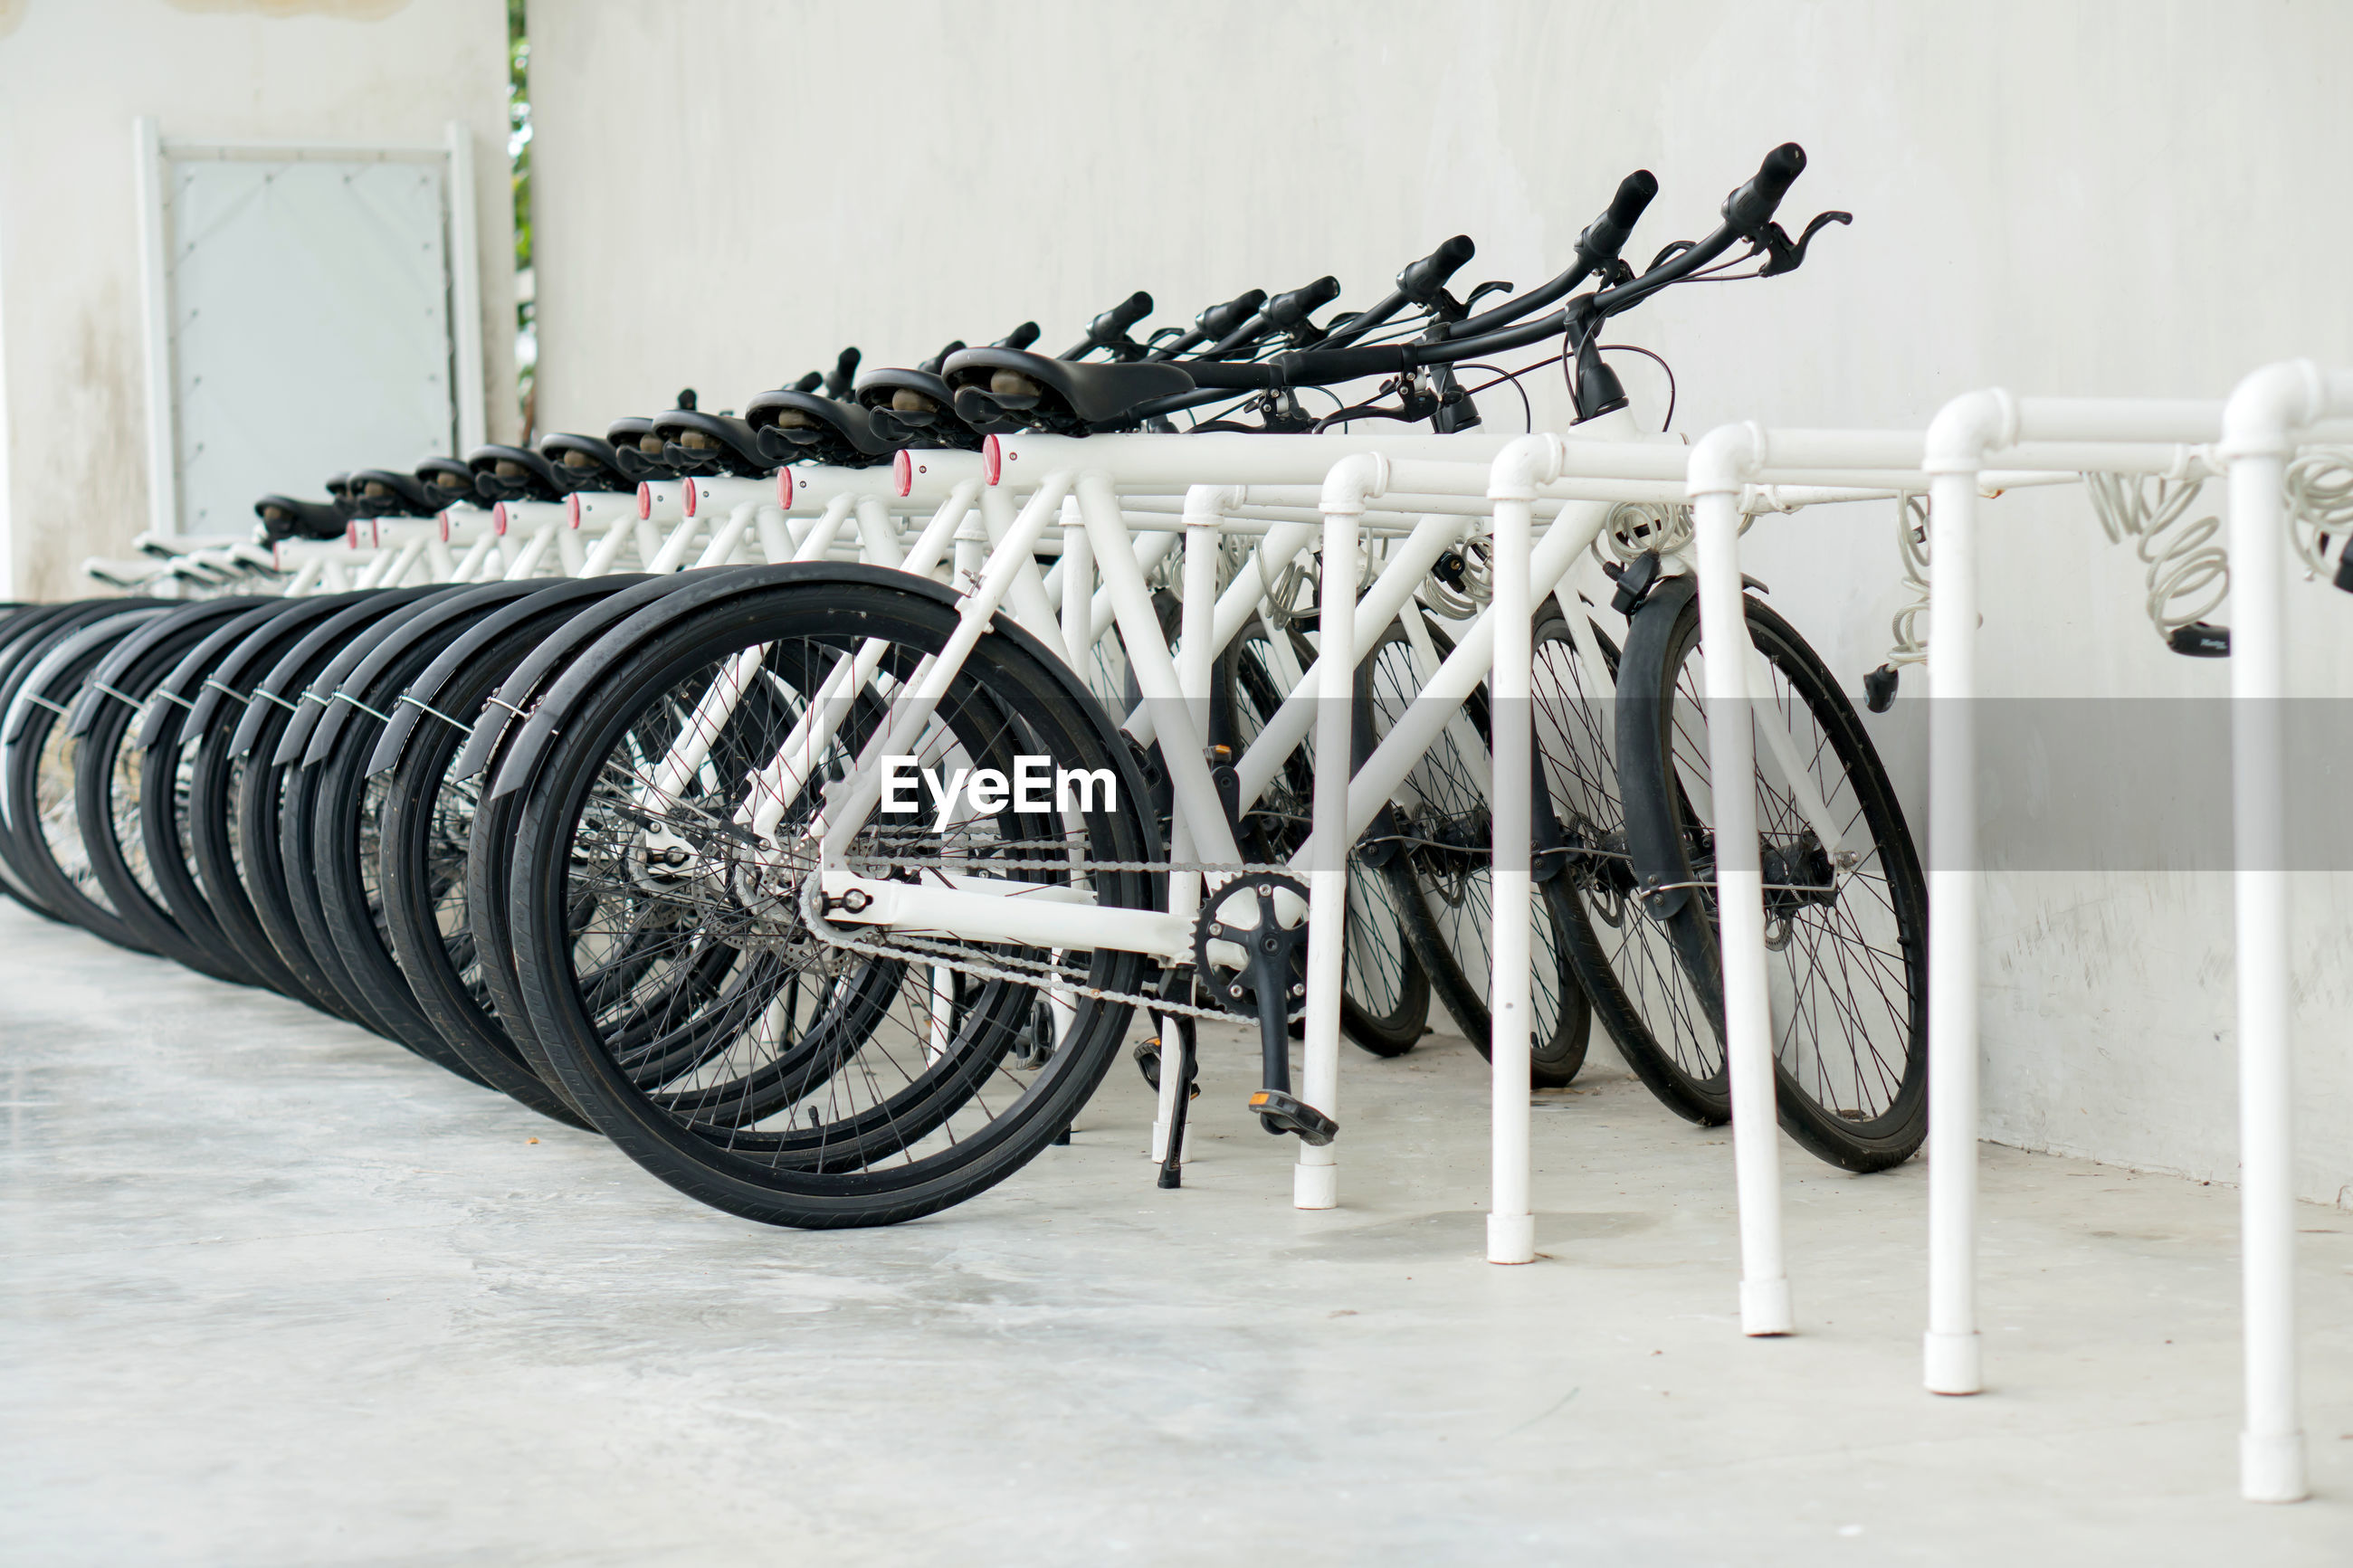 Bicycles parked on rack against white wall